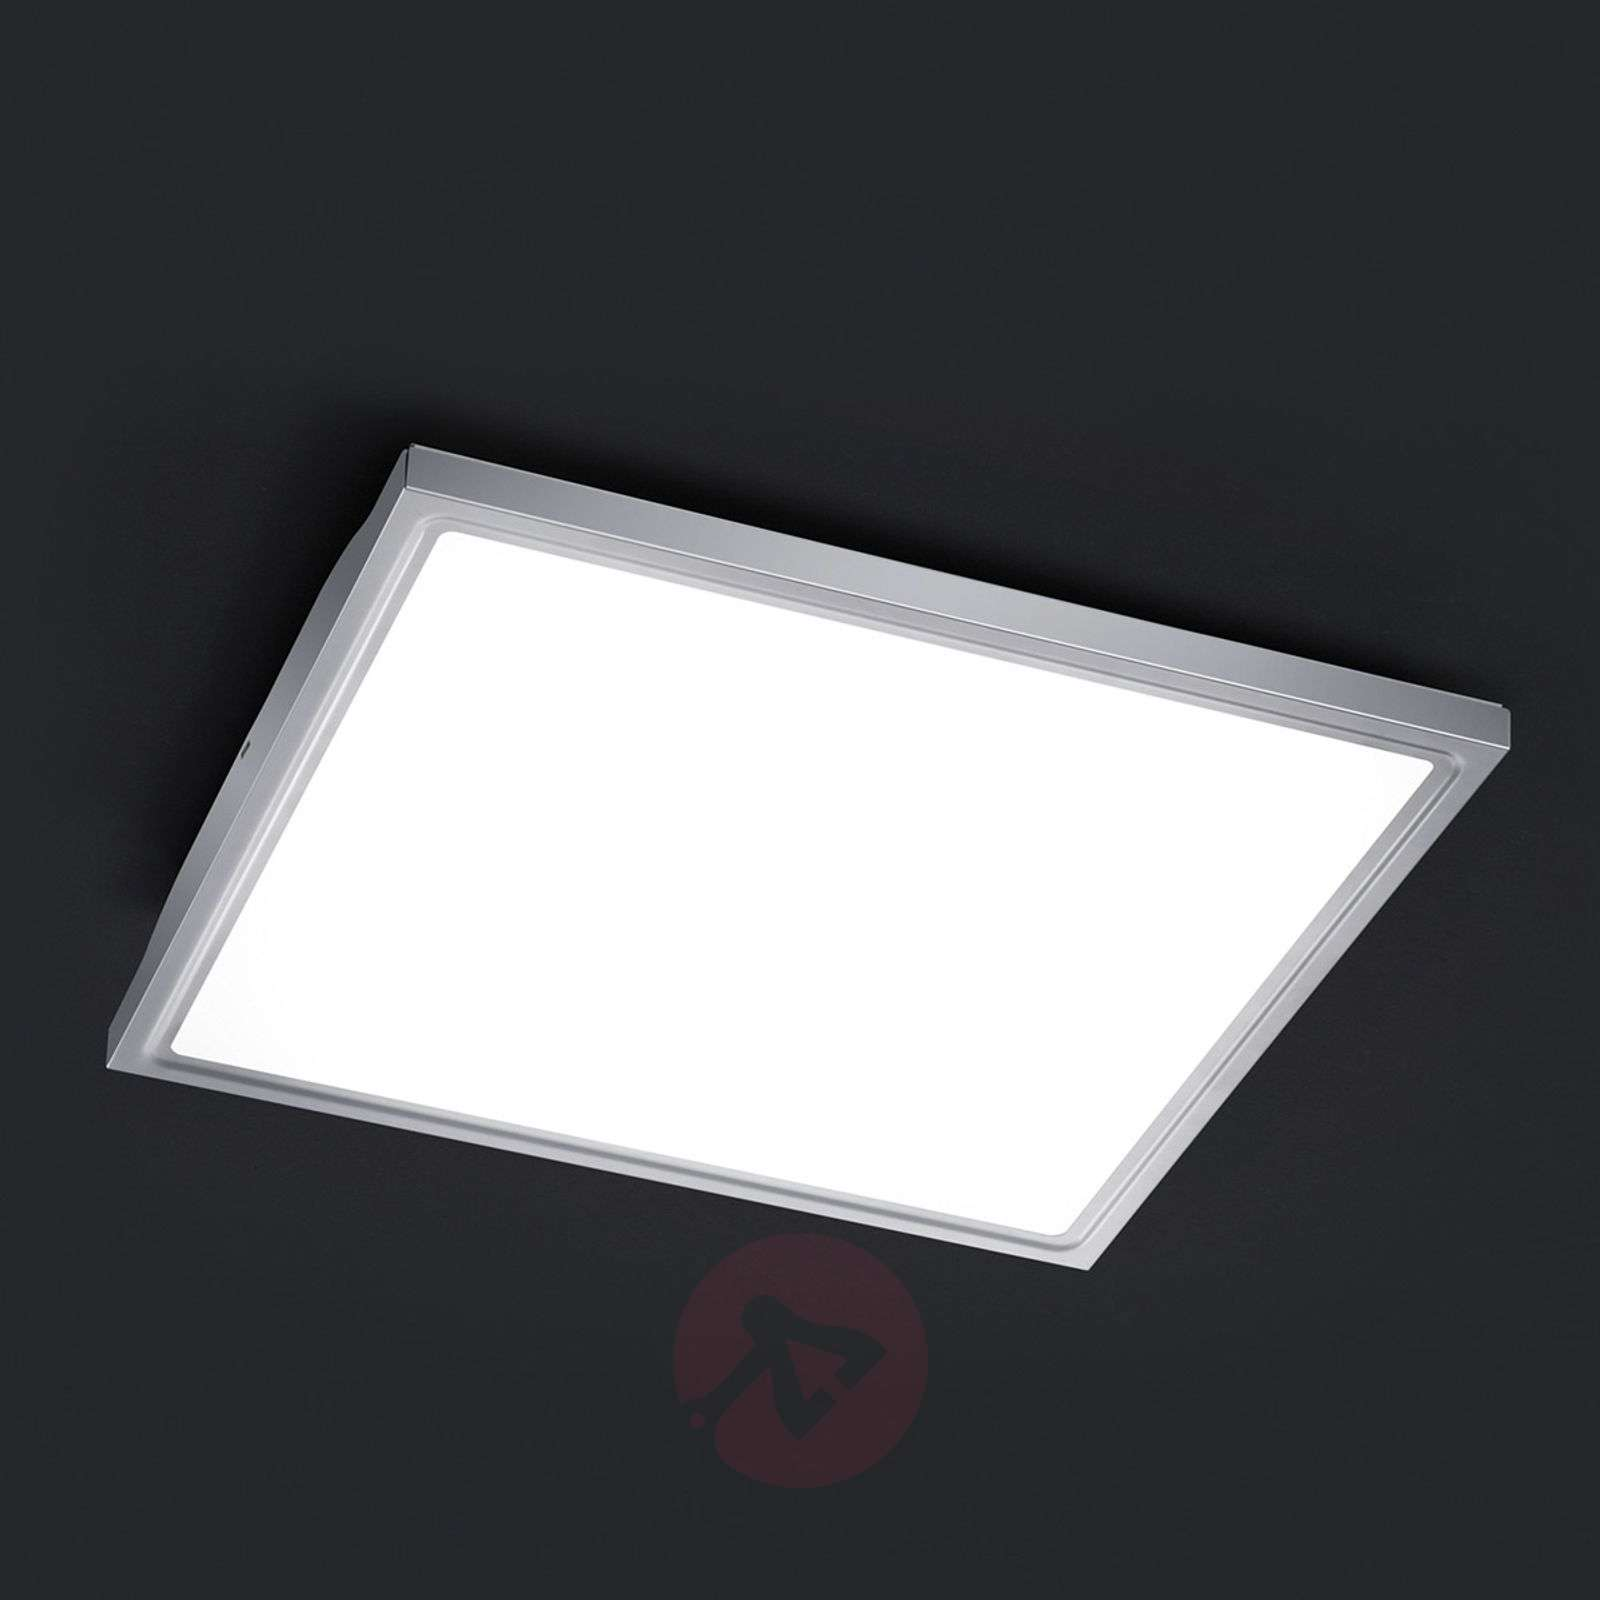 Neutralna lampa sufitowa LED Future, 40 cm